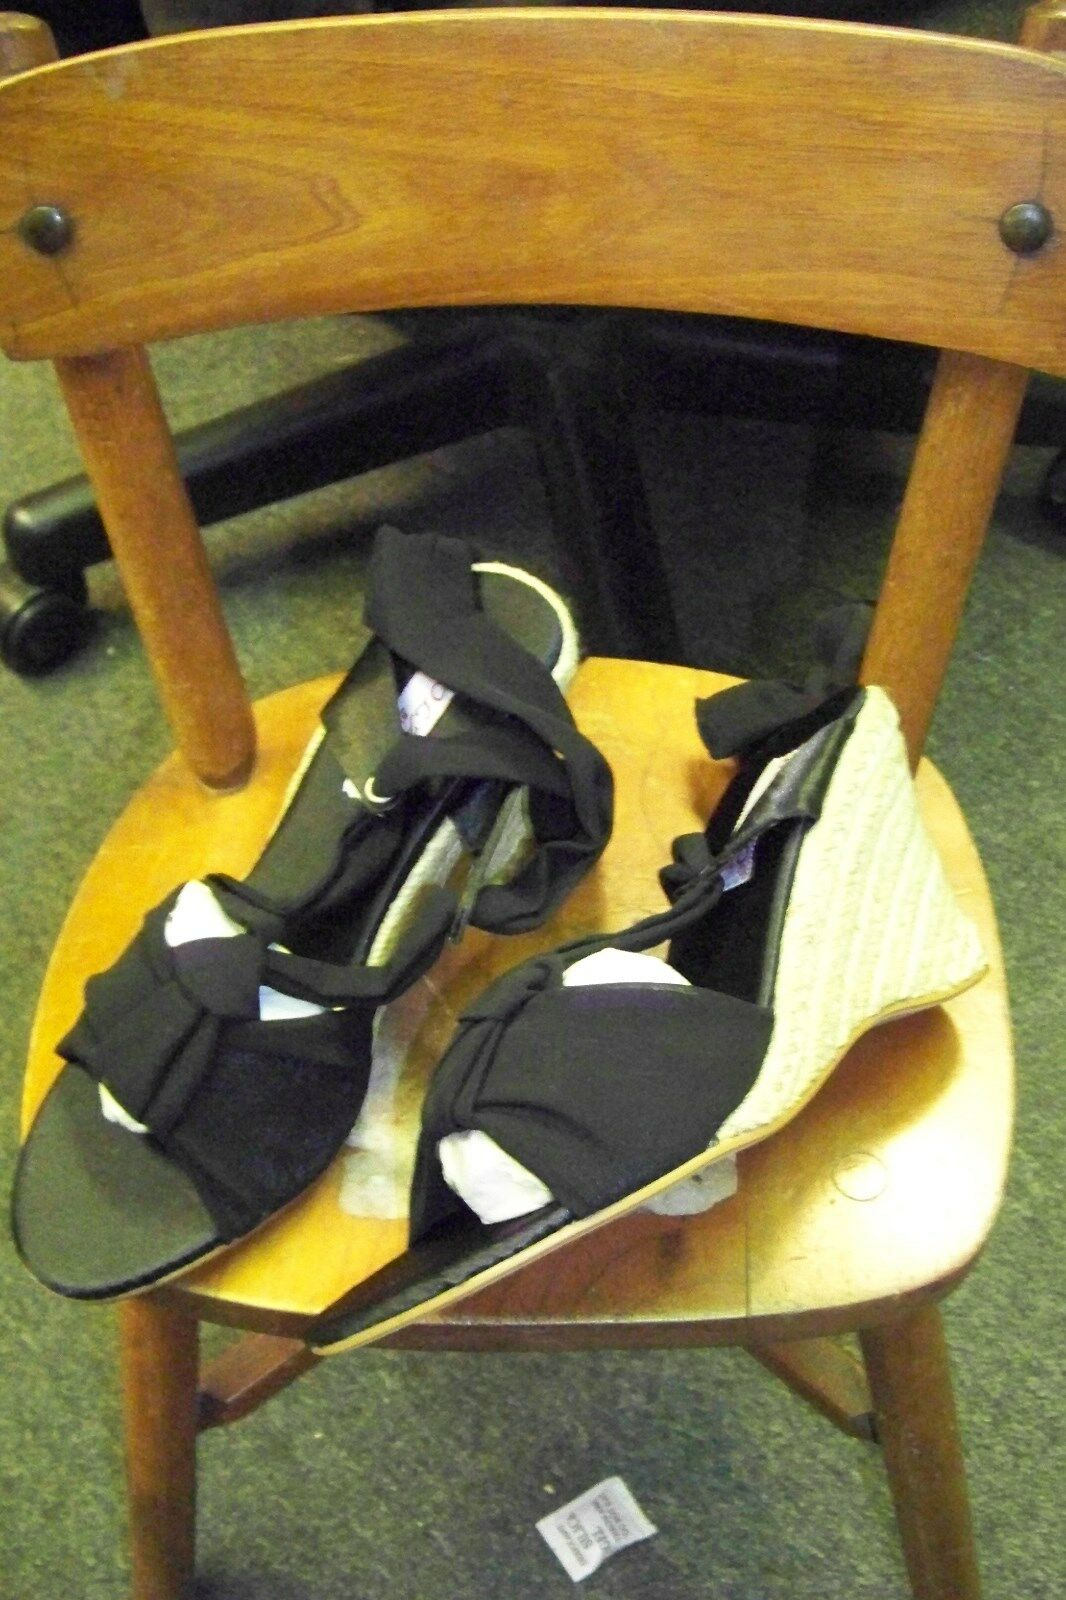 bolaro summer rio size black ankle tie wedge heels shoes size rio 7 1/2 398b92